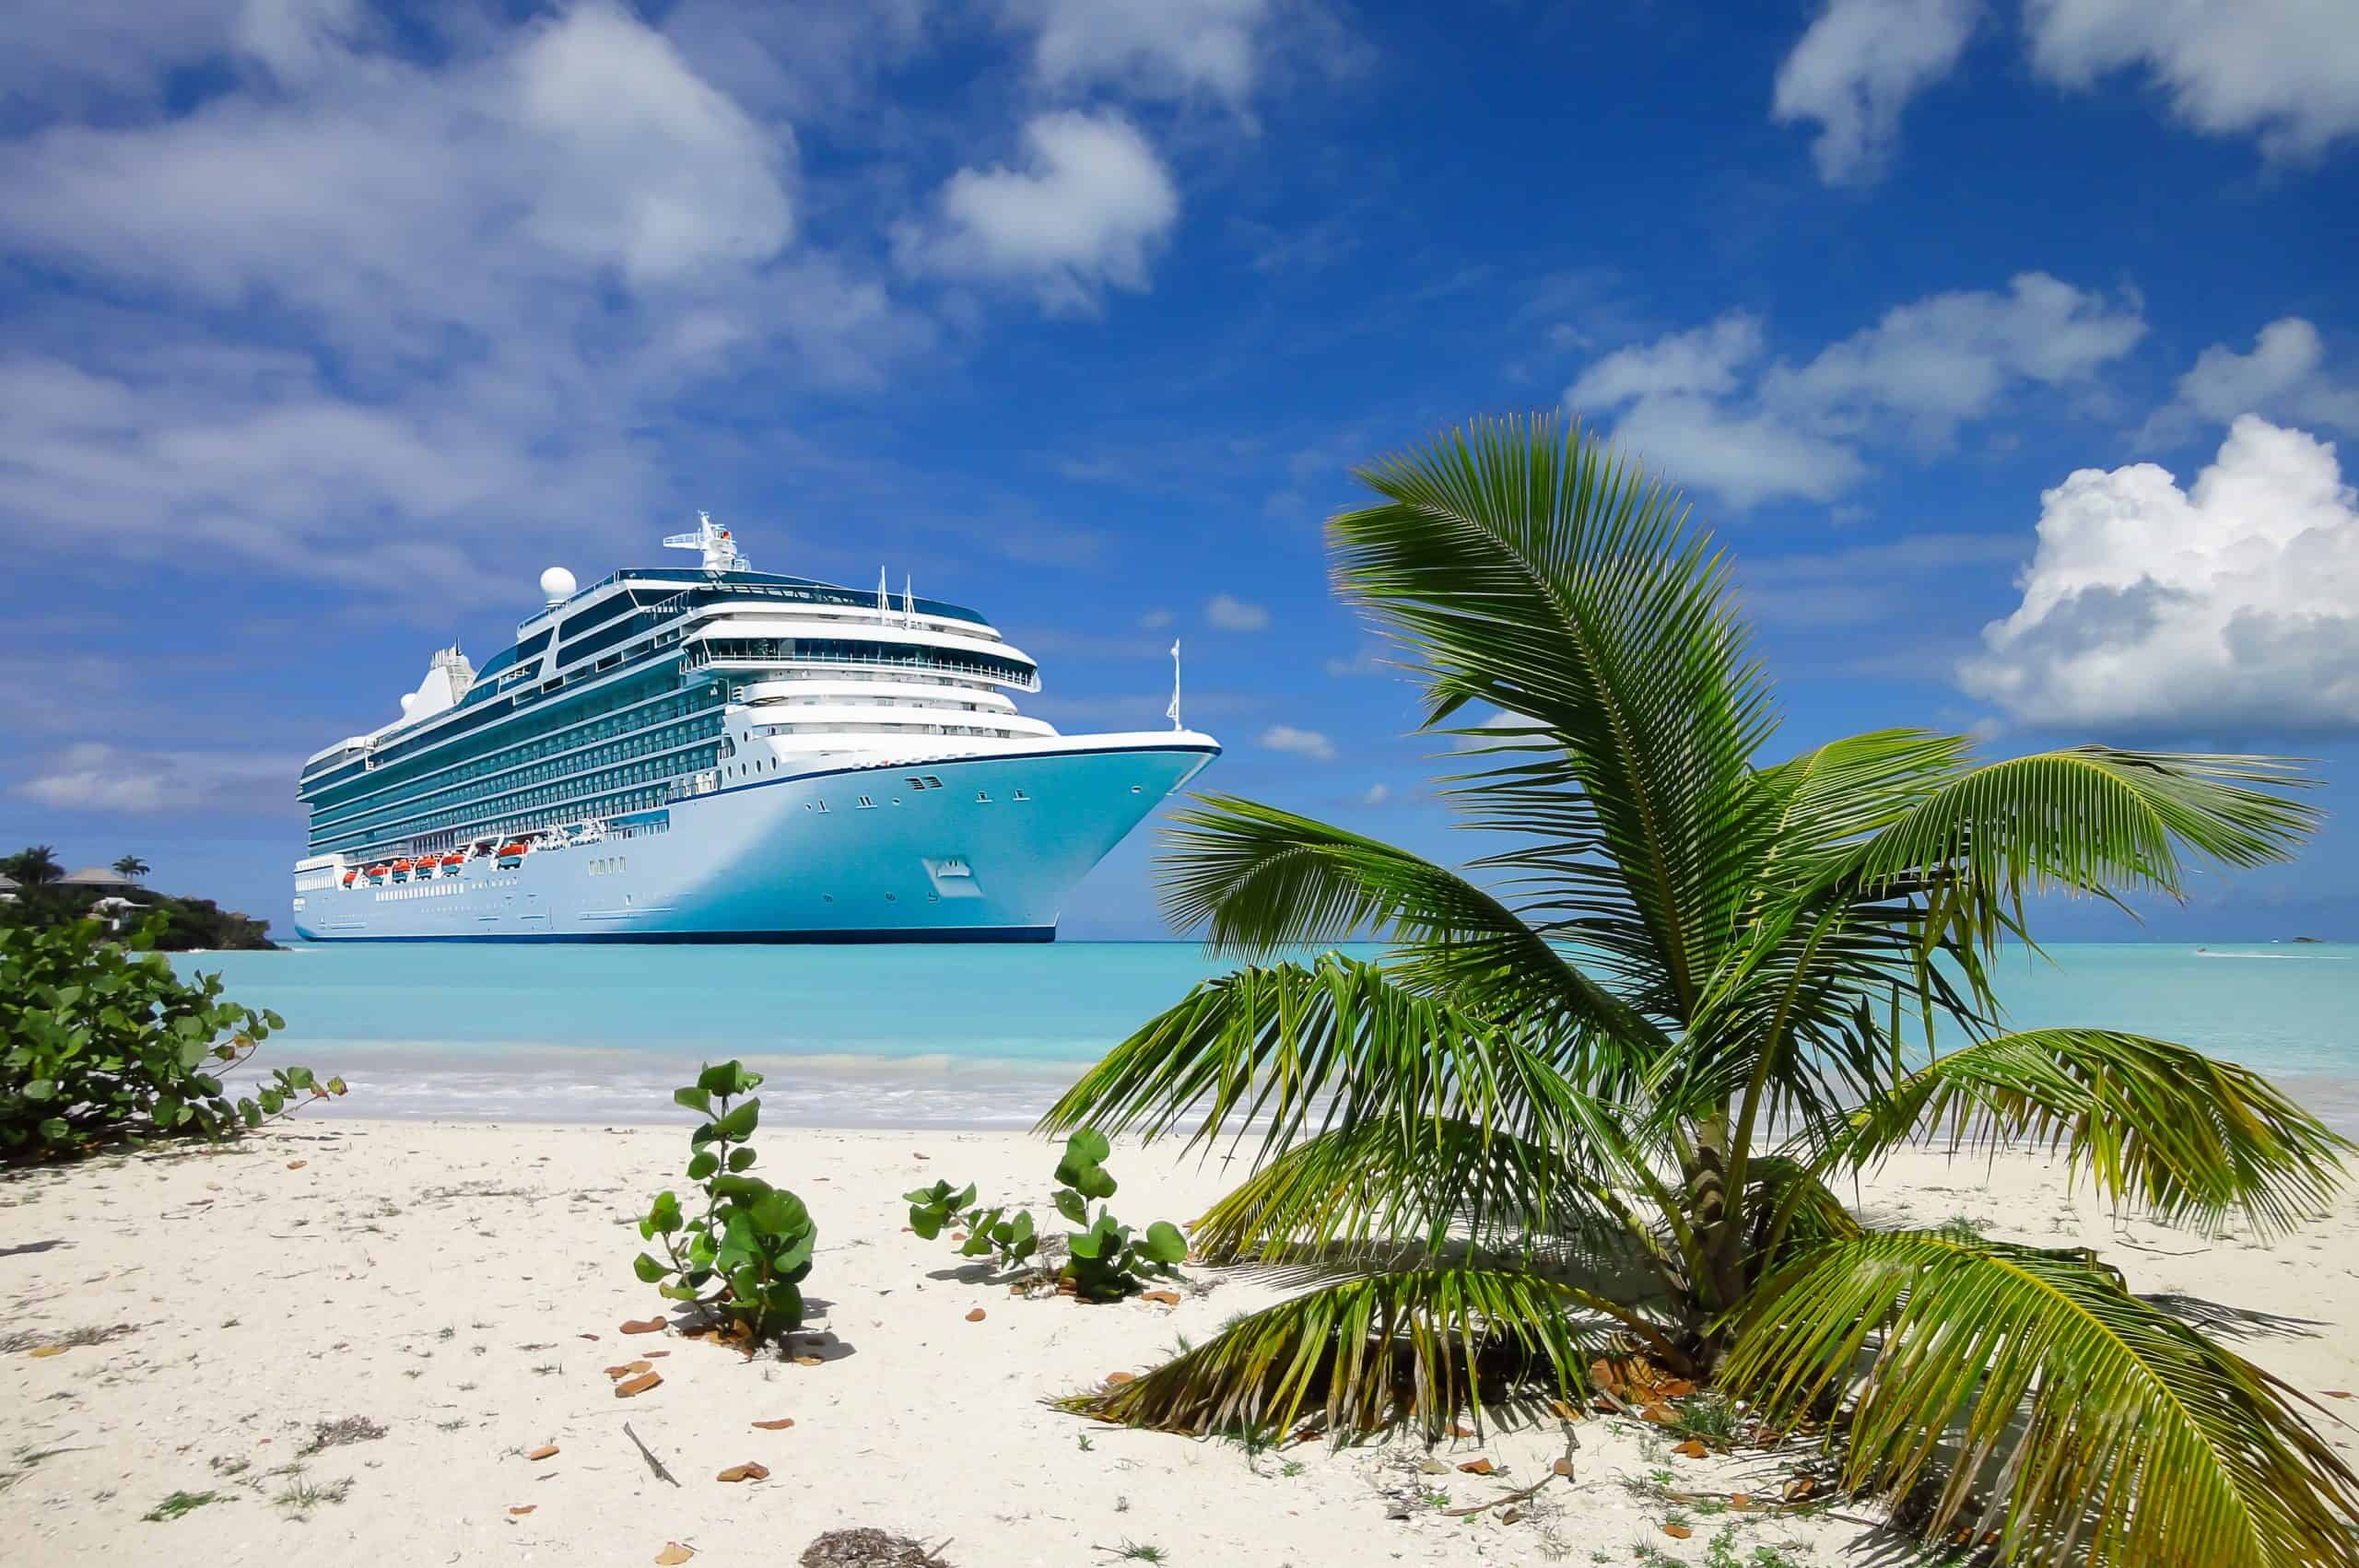 70 Best Cruise Captions for Your Instagram Photos at Sea